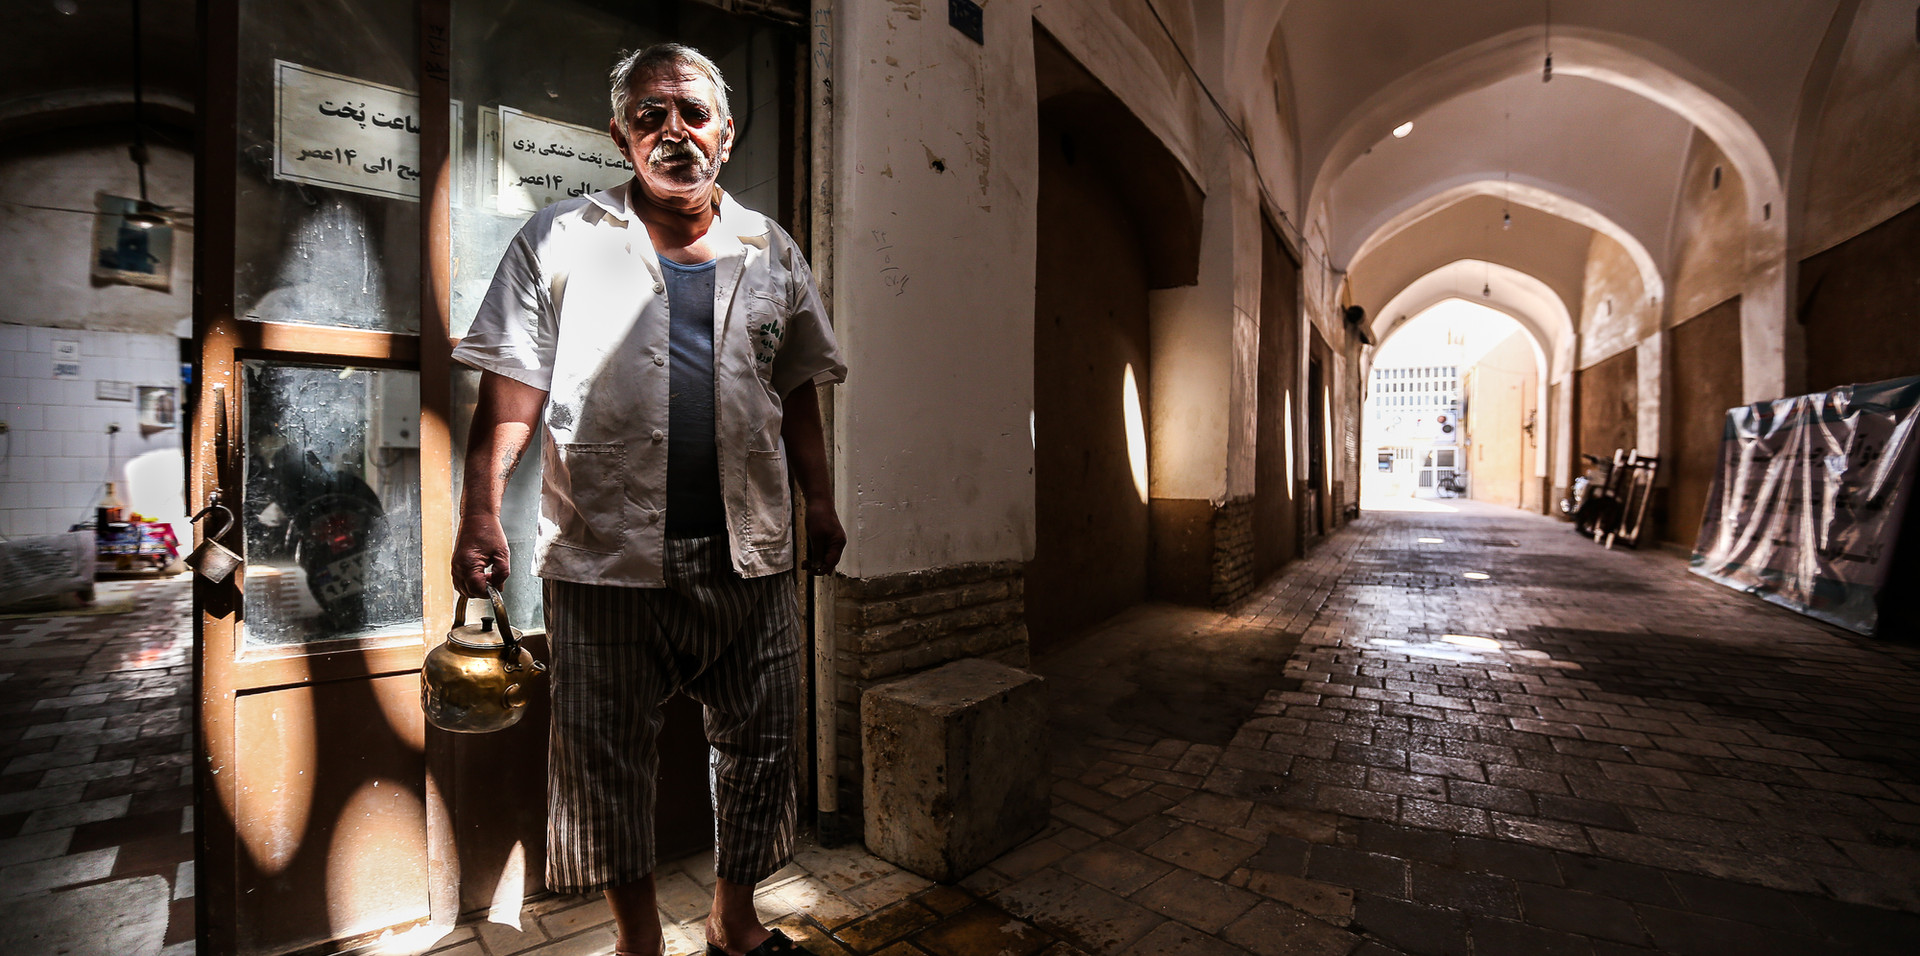 The man in the souq